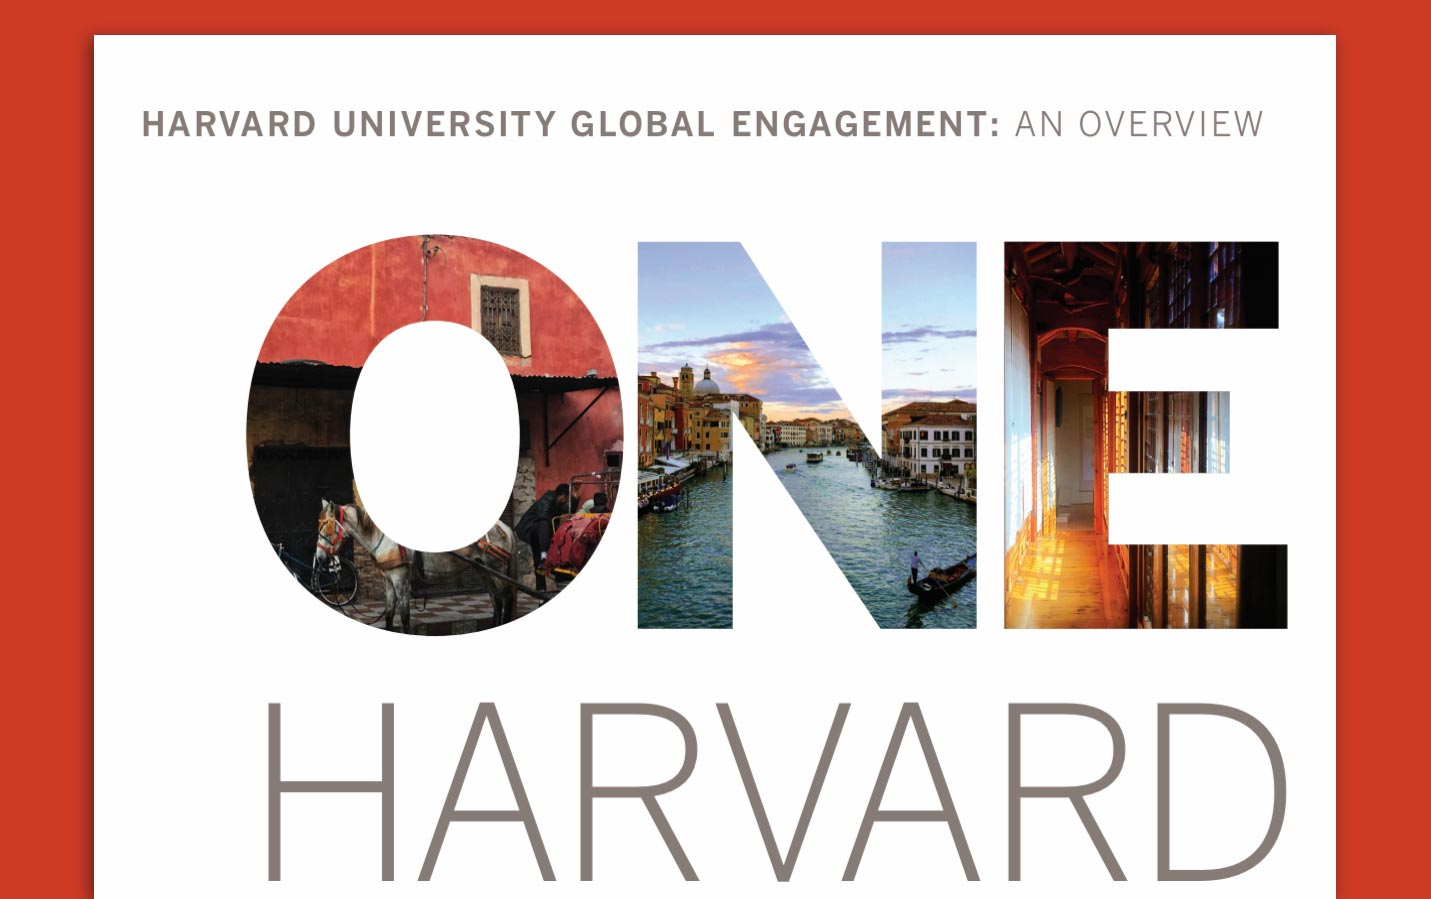 Harvard Global Engagement